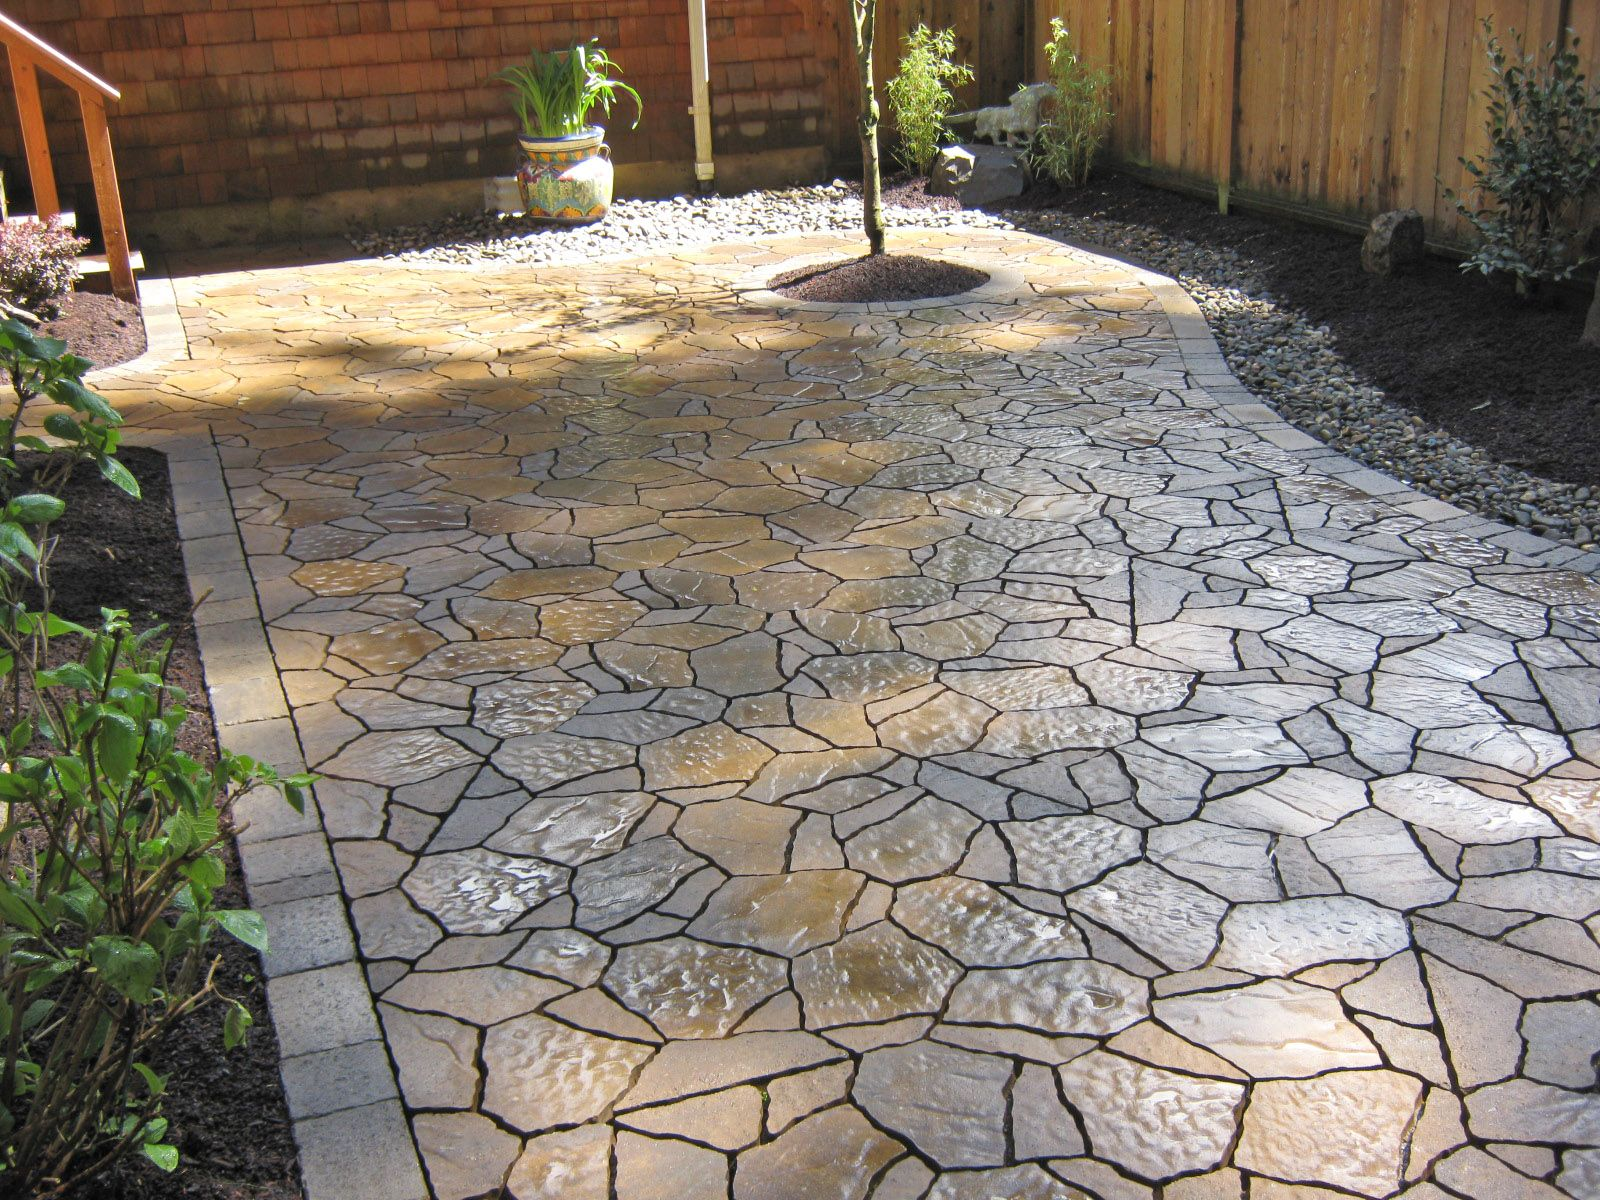 Stone patio ideas landscape archives dennis 39 7 dees backyard pinterest patios - Concrete backyard design ...